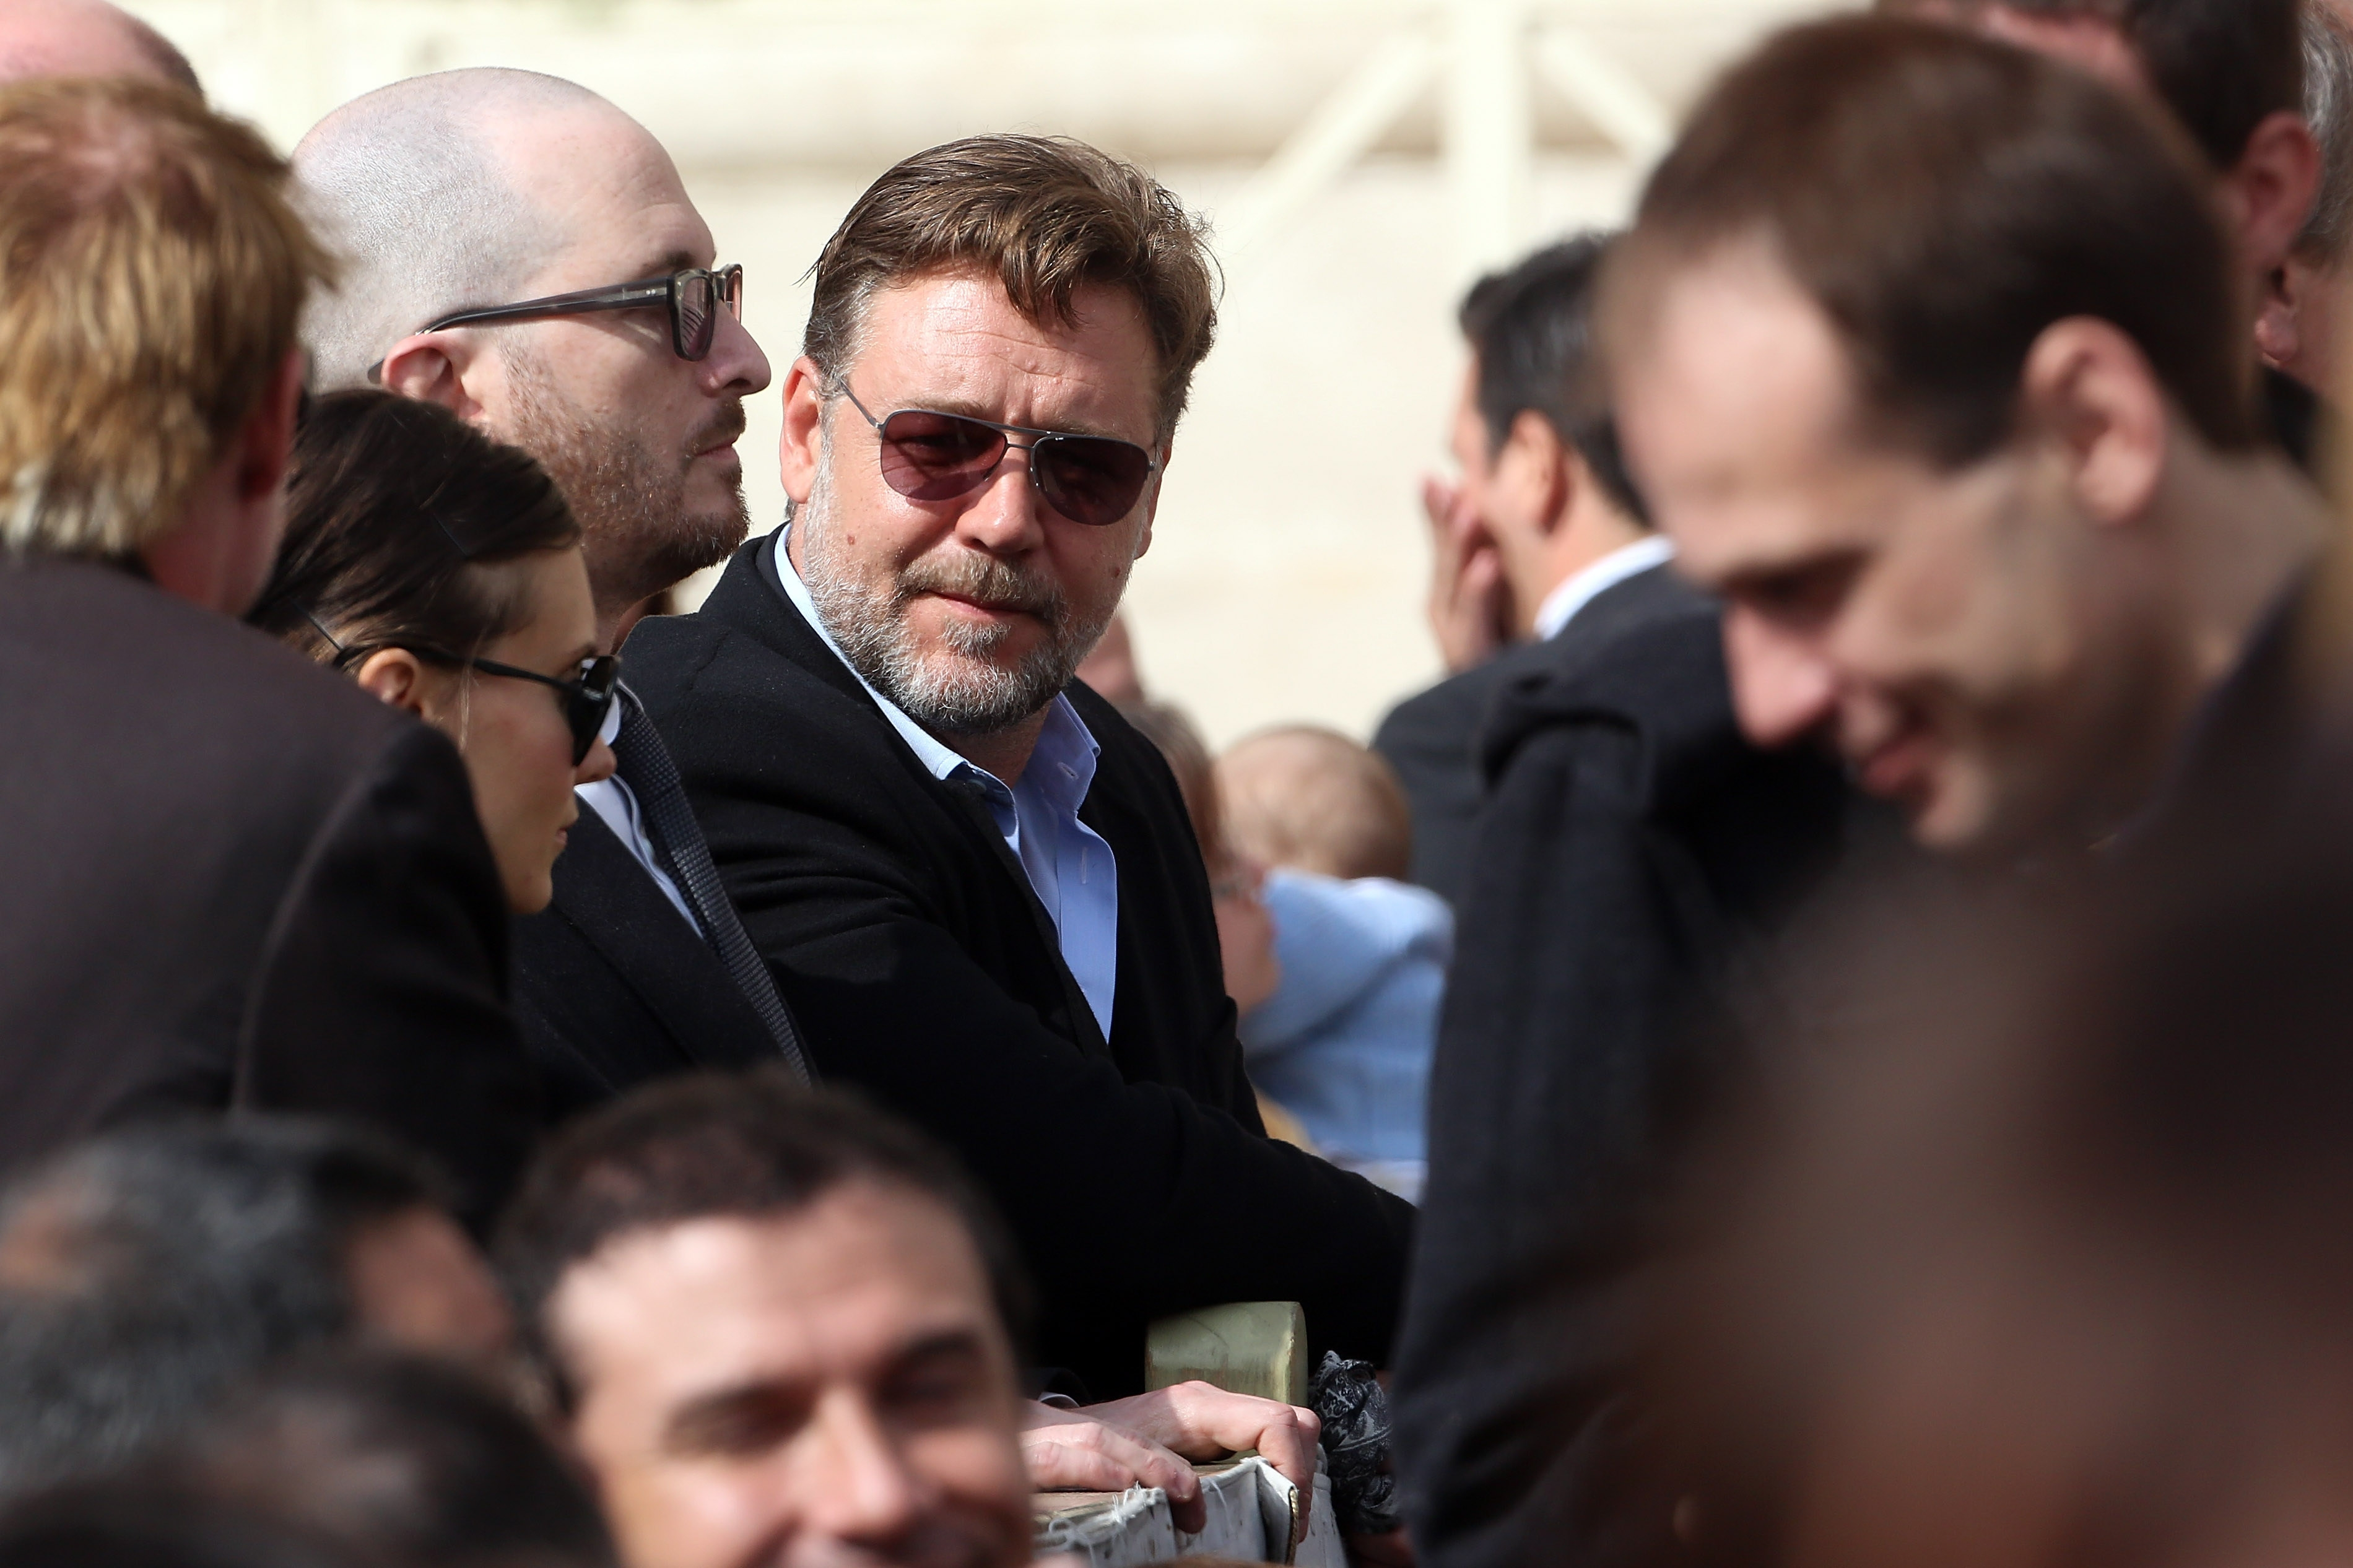 Actor Russell Crowe attends Pope Francis' weekly audience in St. Peter's Square in Vatican City on Wednesday.